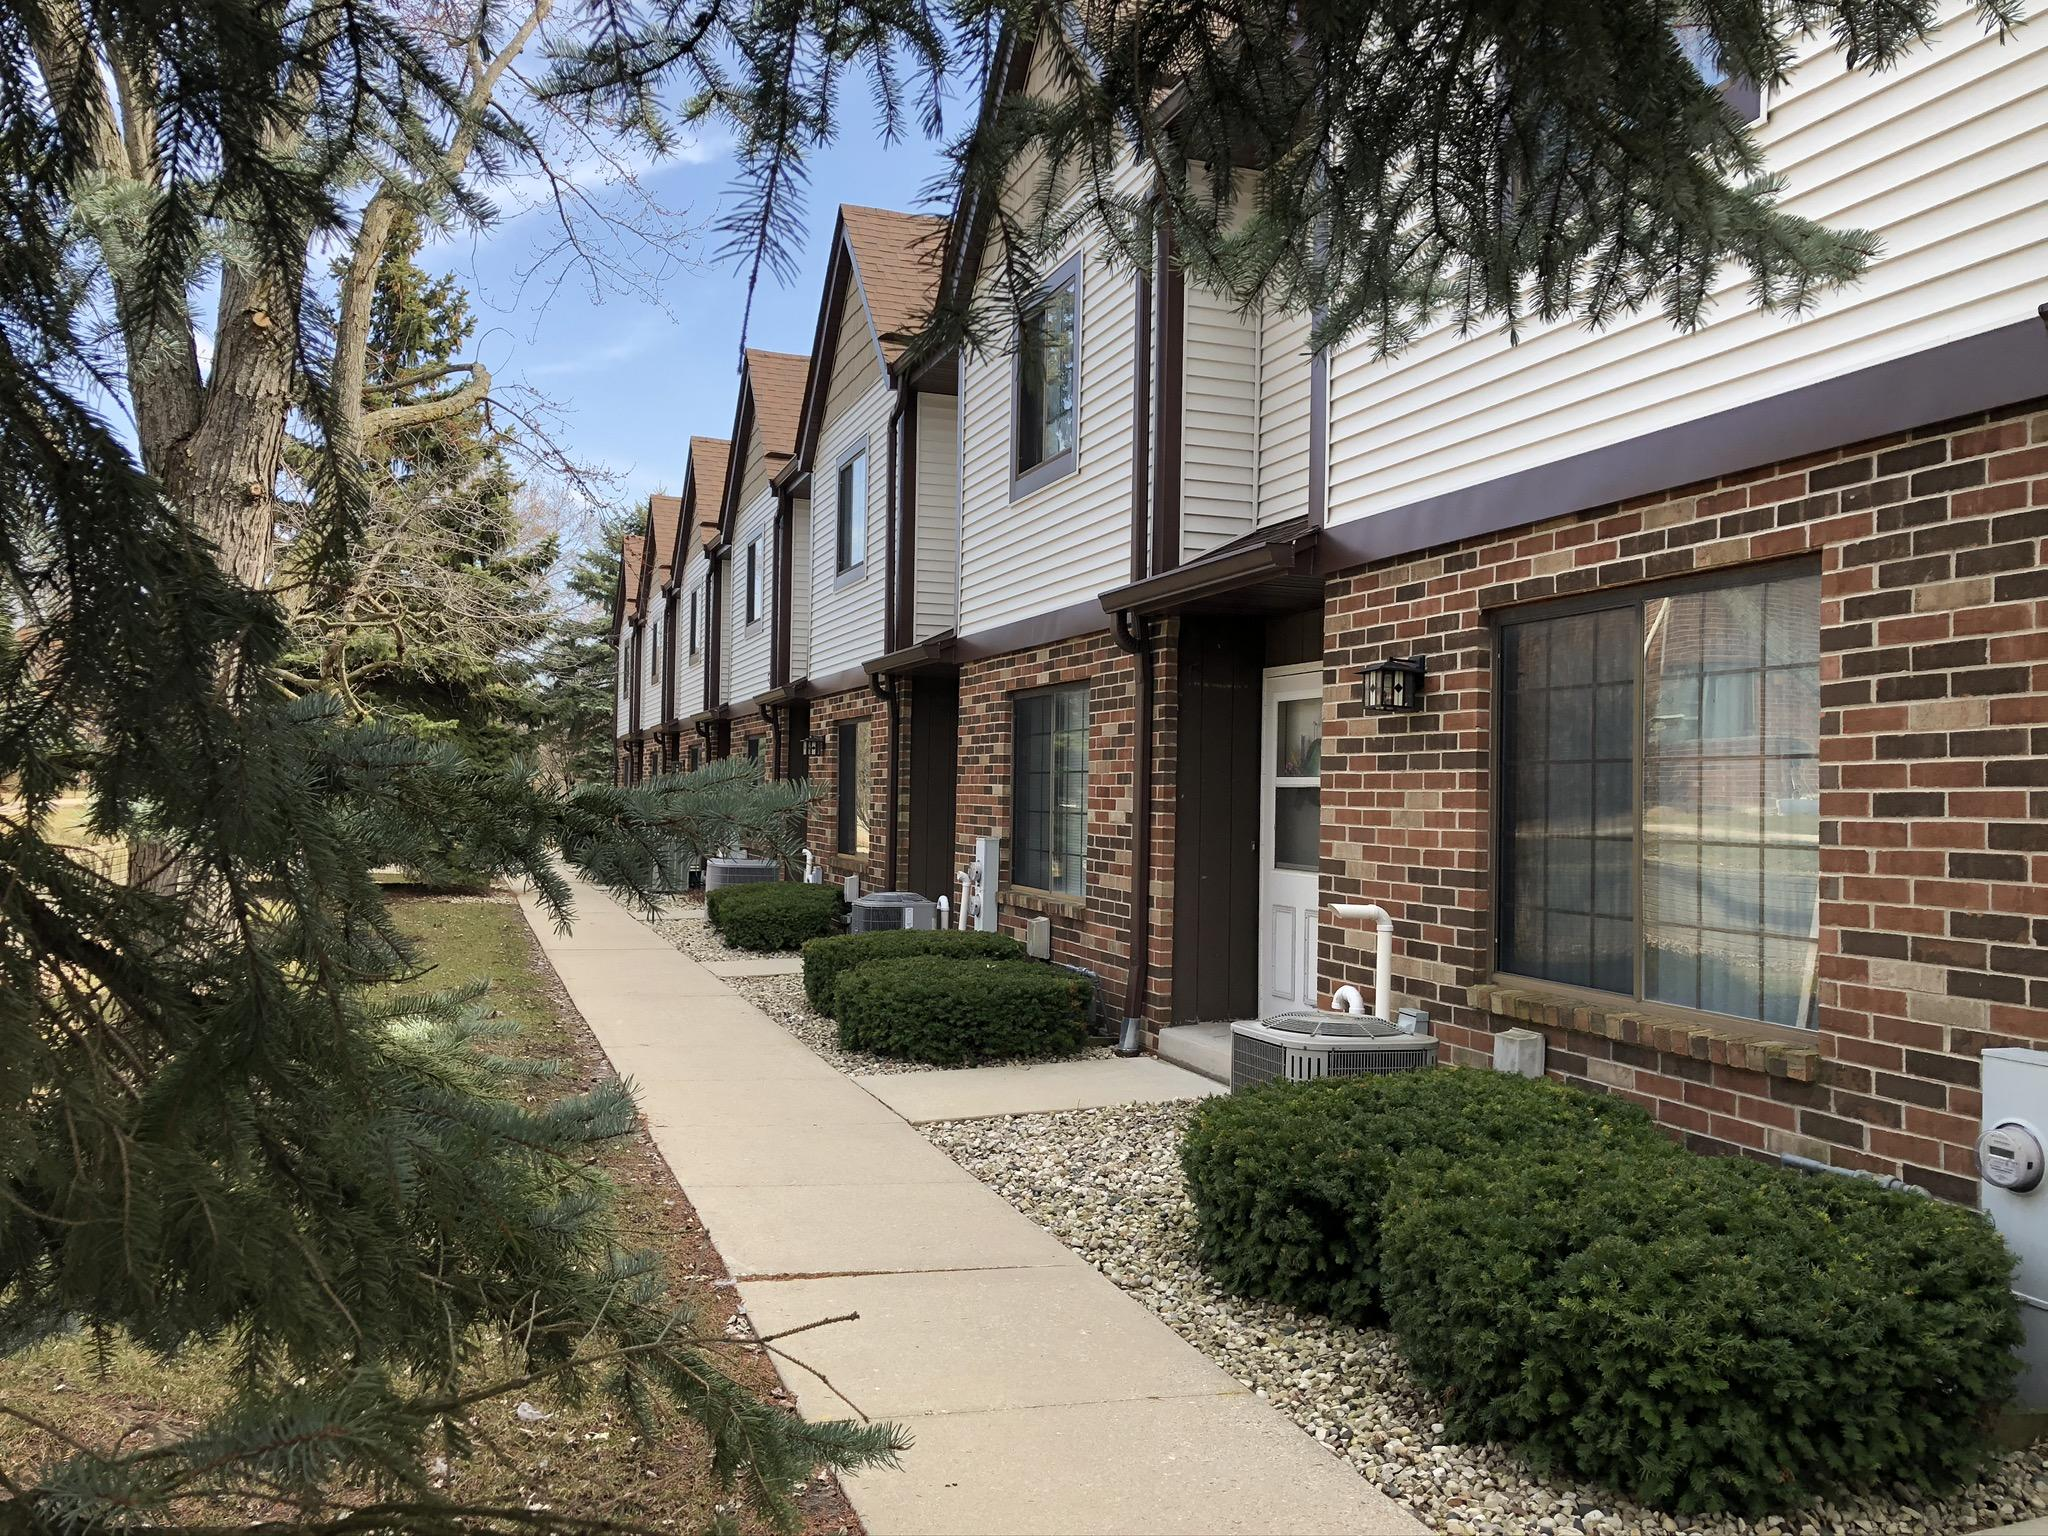 4130 104th St, Milwaukee, Wisconsin 53222, 2 Bedrooms Bedrooms, 5 Rooms Rooms,2 BathroomsBathrooms,Condominiums,For Sale,104th St,1,1696688